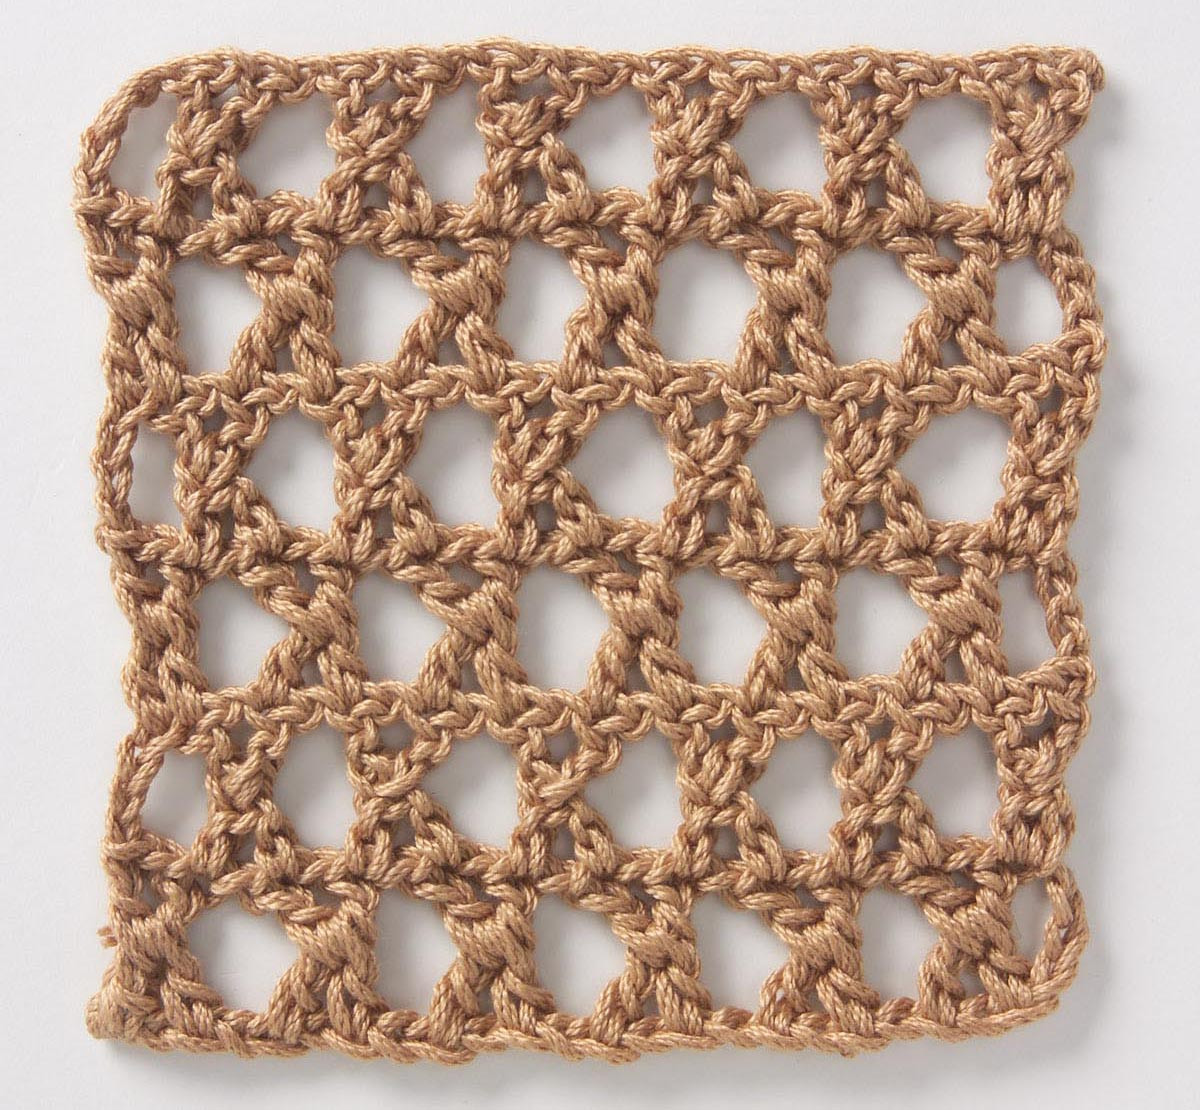 Lovely Crochet Star Stitch Tutorial and Patterns Free Crochet Stitches Of Awesome 41 Models Free Crochet Stitches